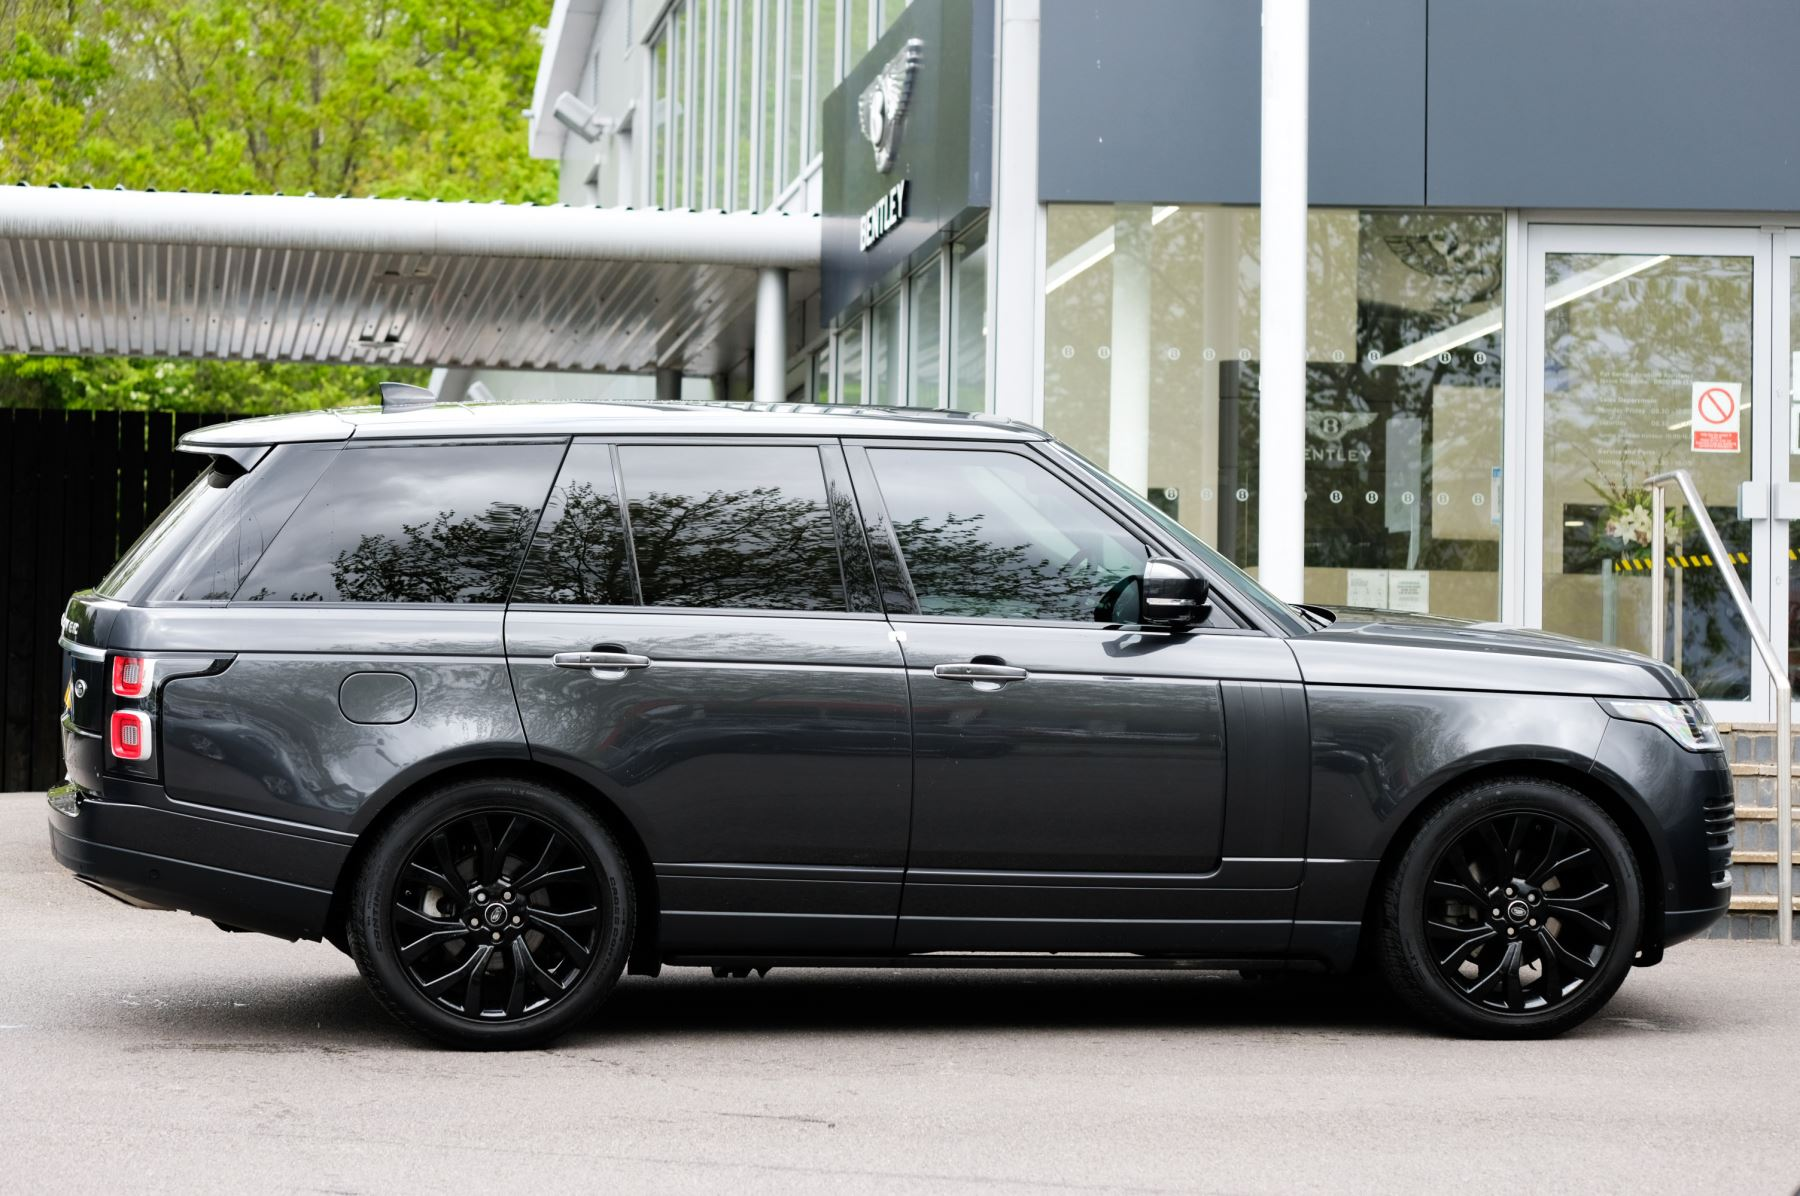 Land Rover Range Rover 3.0 SDV6 Vogue SE - Panoramic Roof - Privacy Glass - 21 inch Alloys image 3